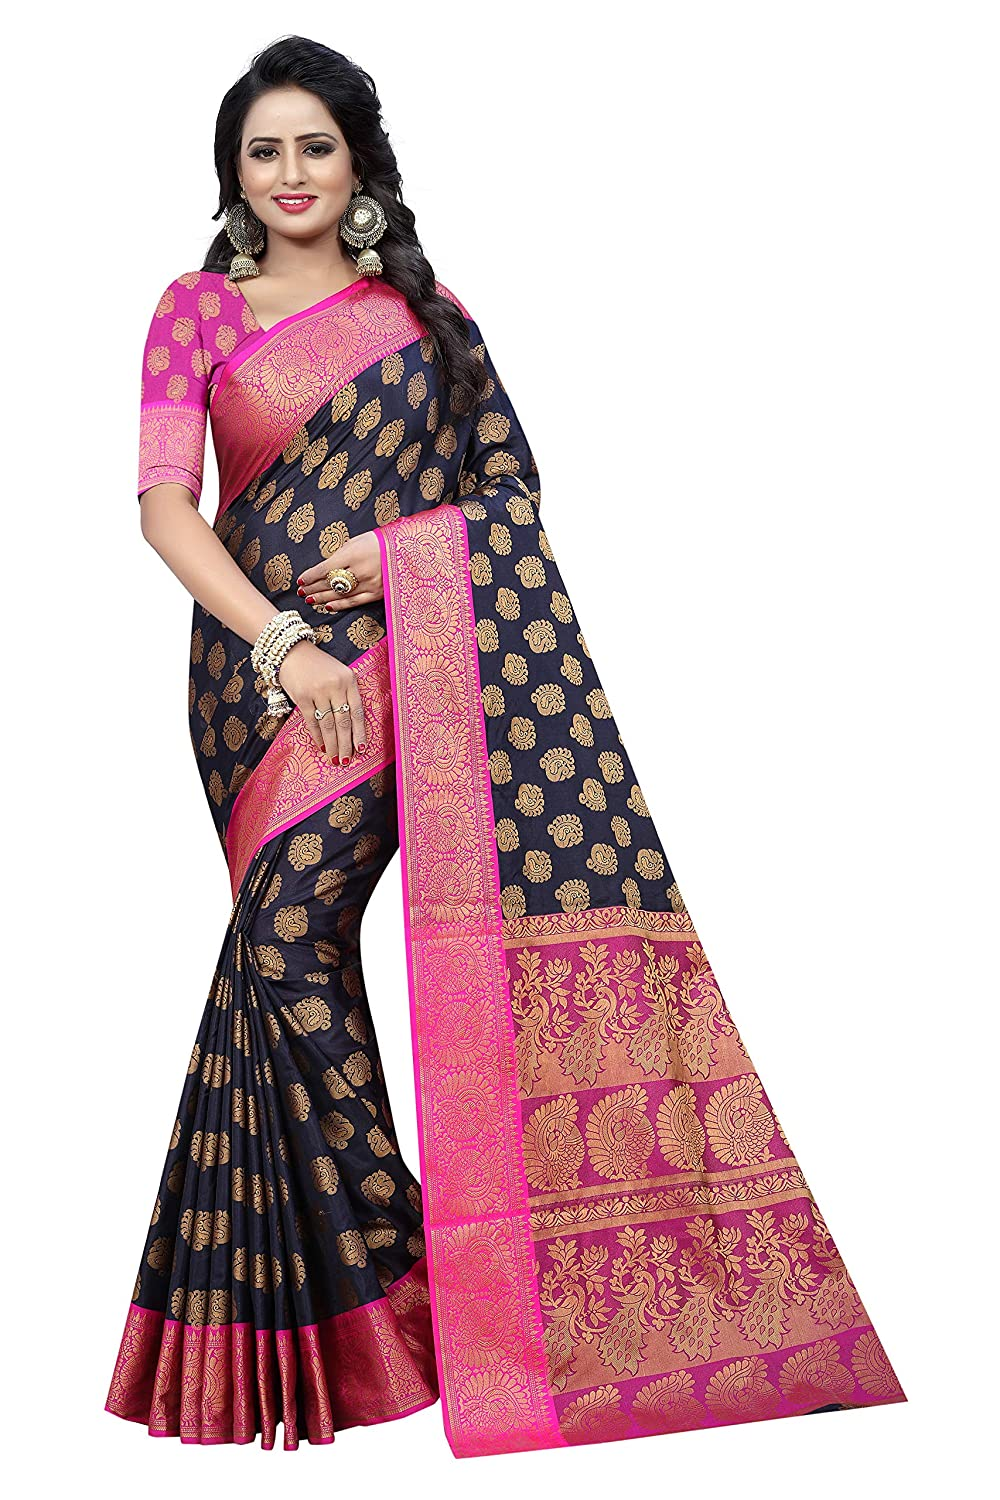 Synthetic with Blouse Piece Saree